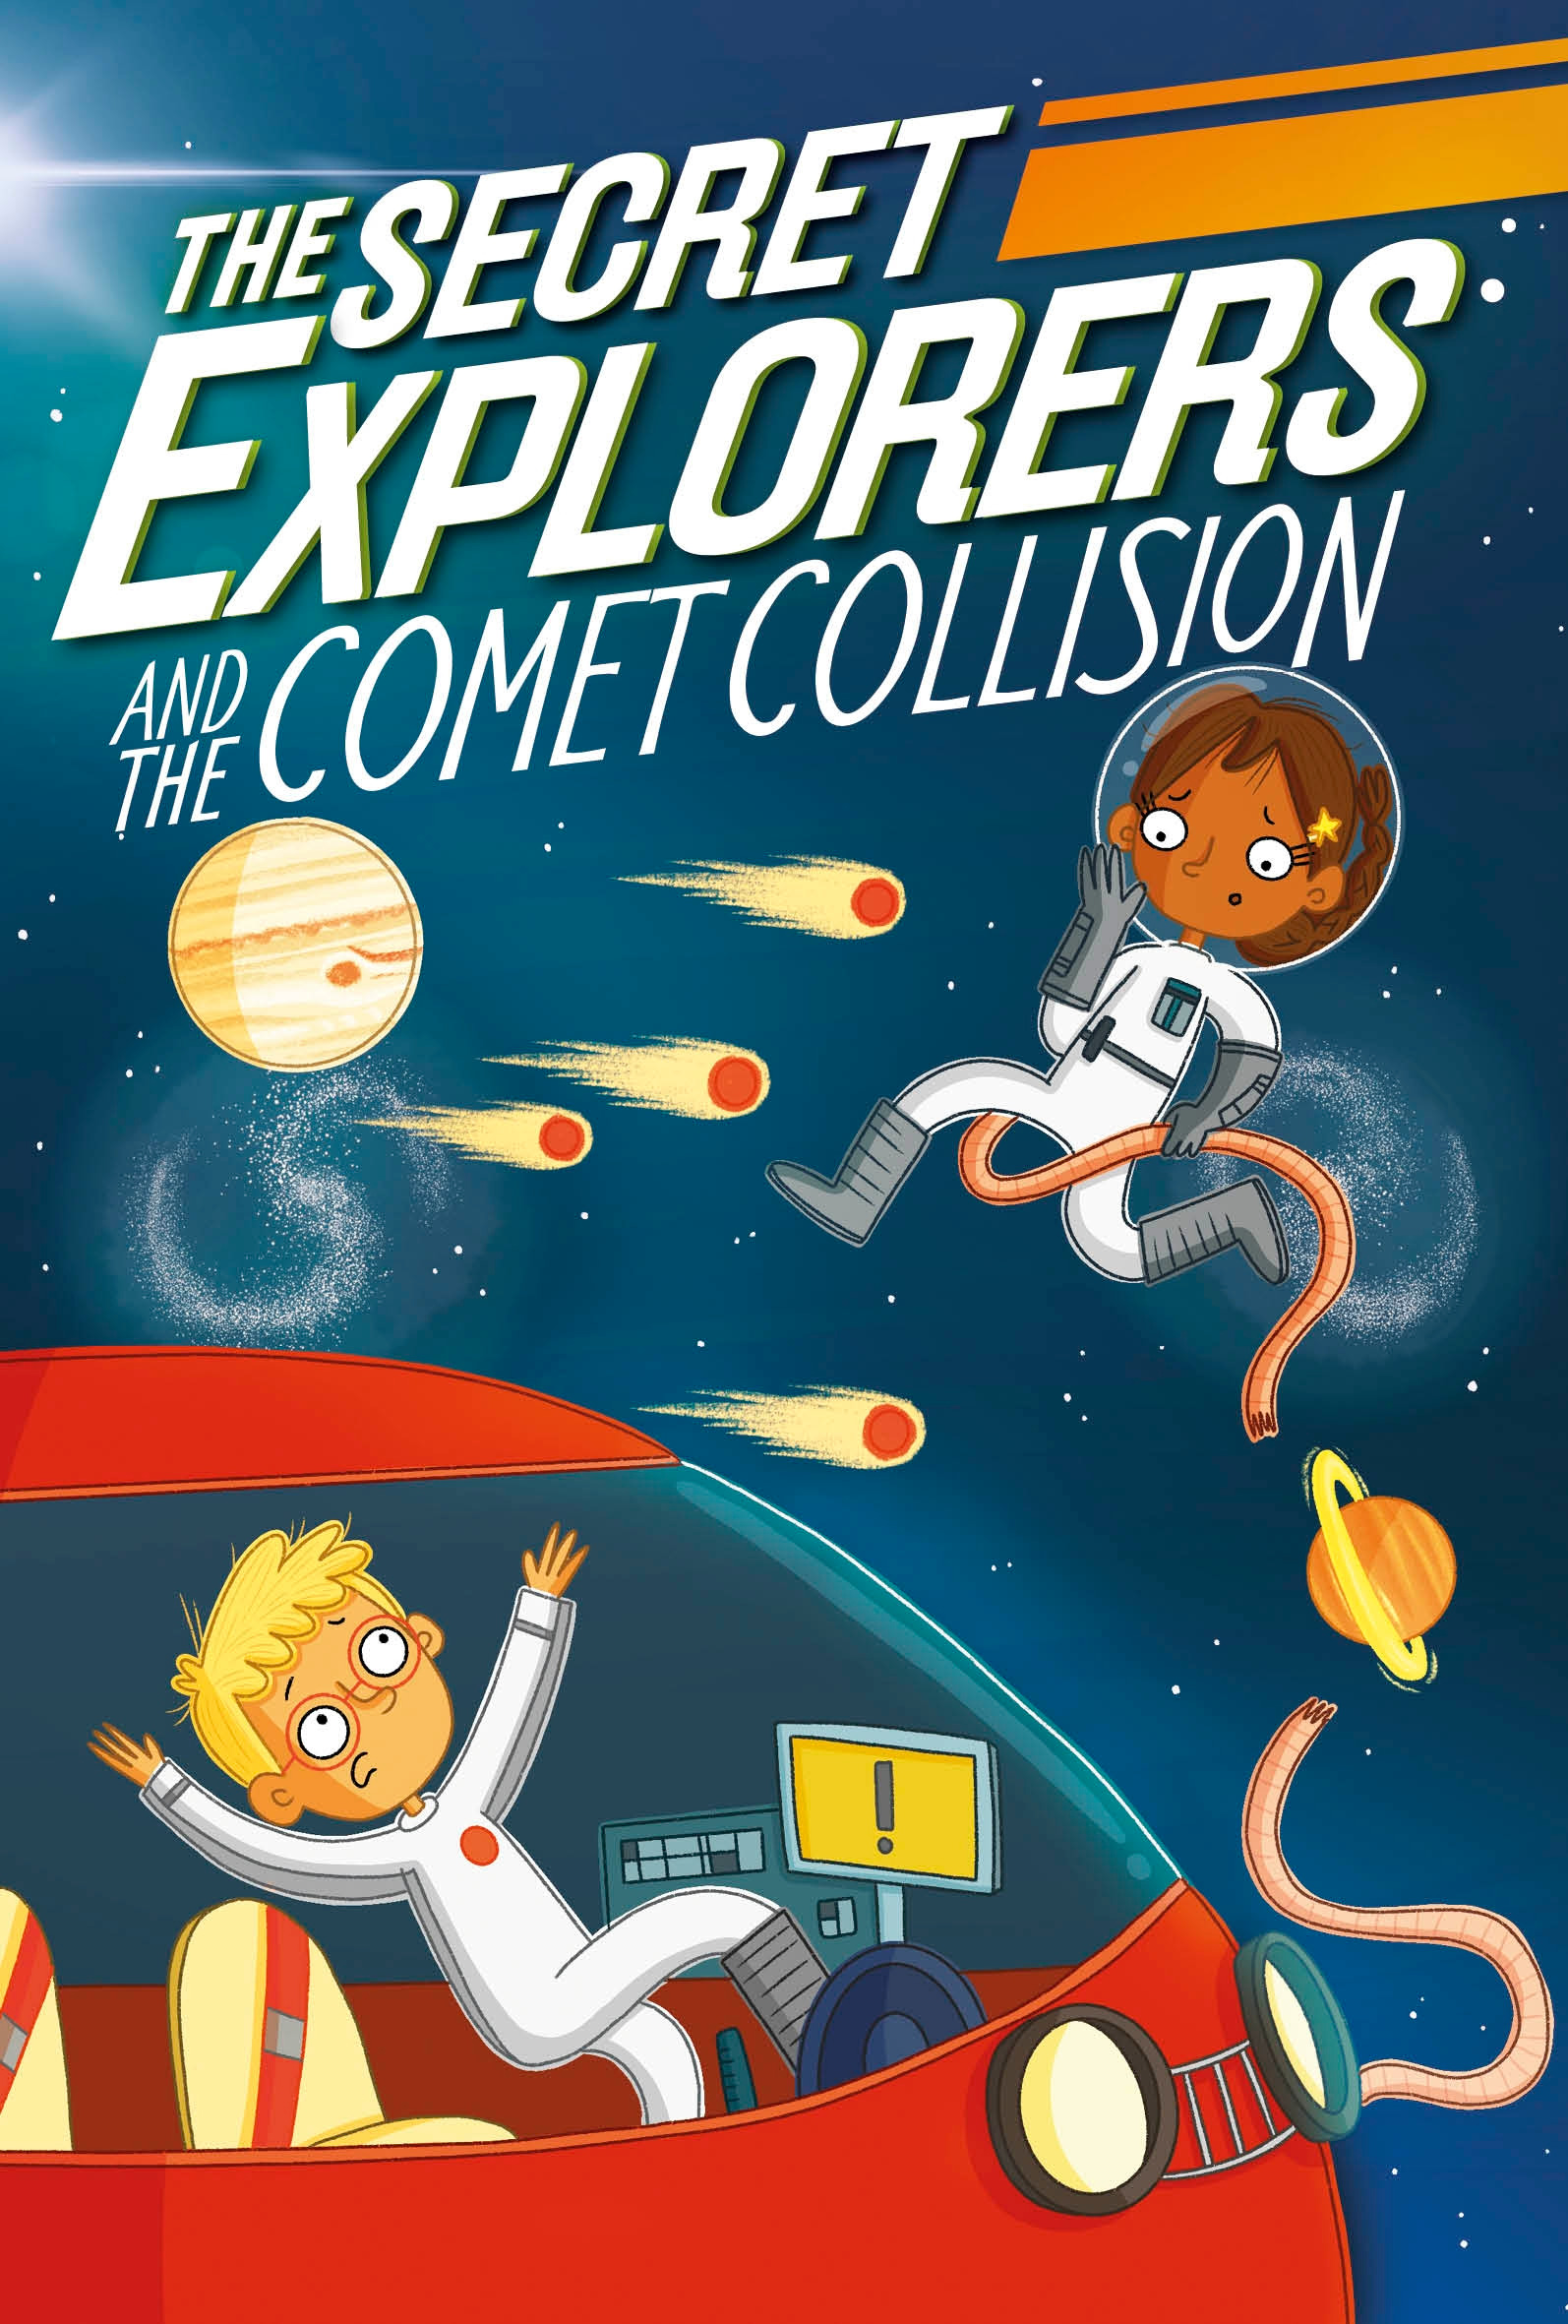 The Secret Explorers - The Secret Explorers and the Comet Collision | 6-8 years old